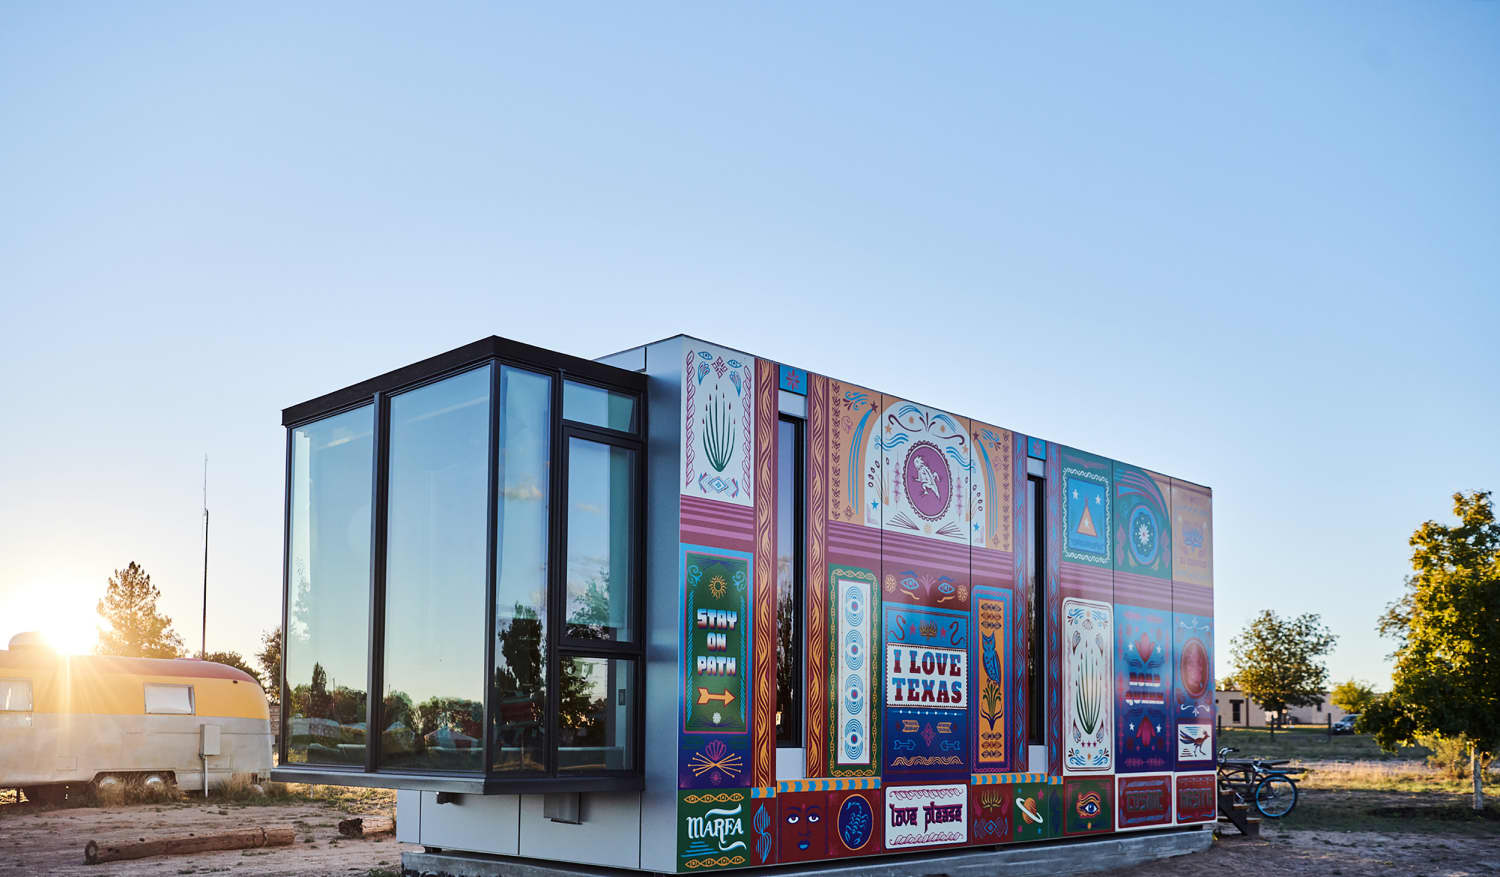 This 325-Square-Foot Tiny House in the Texas Desert Is Out of This World